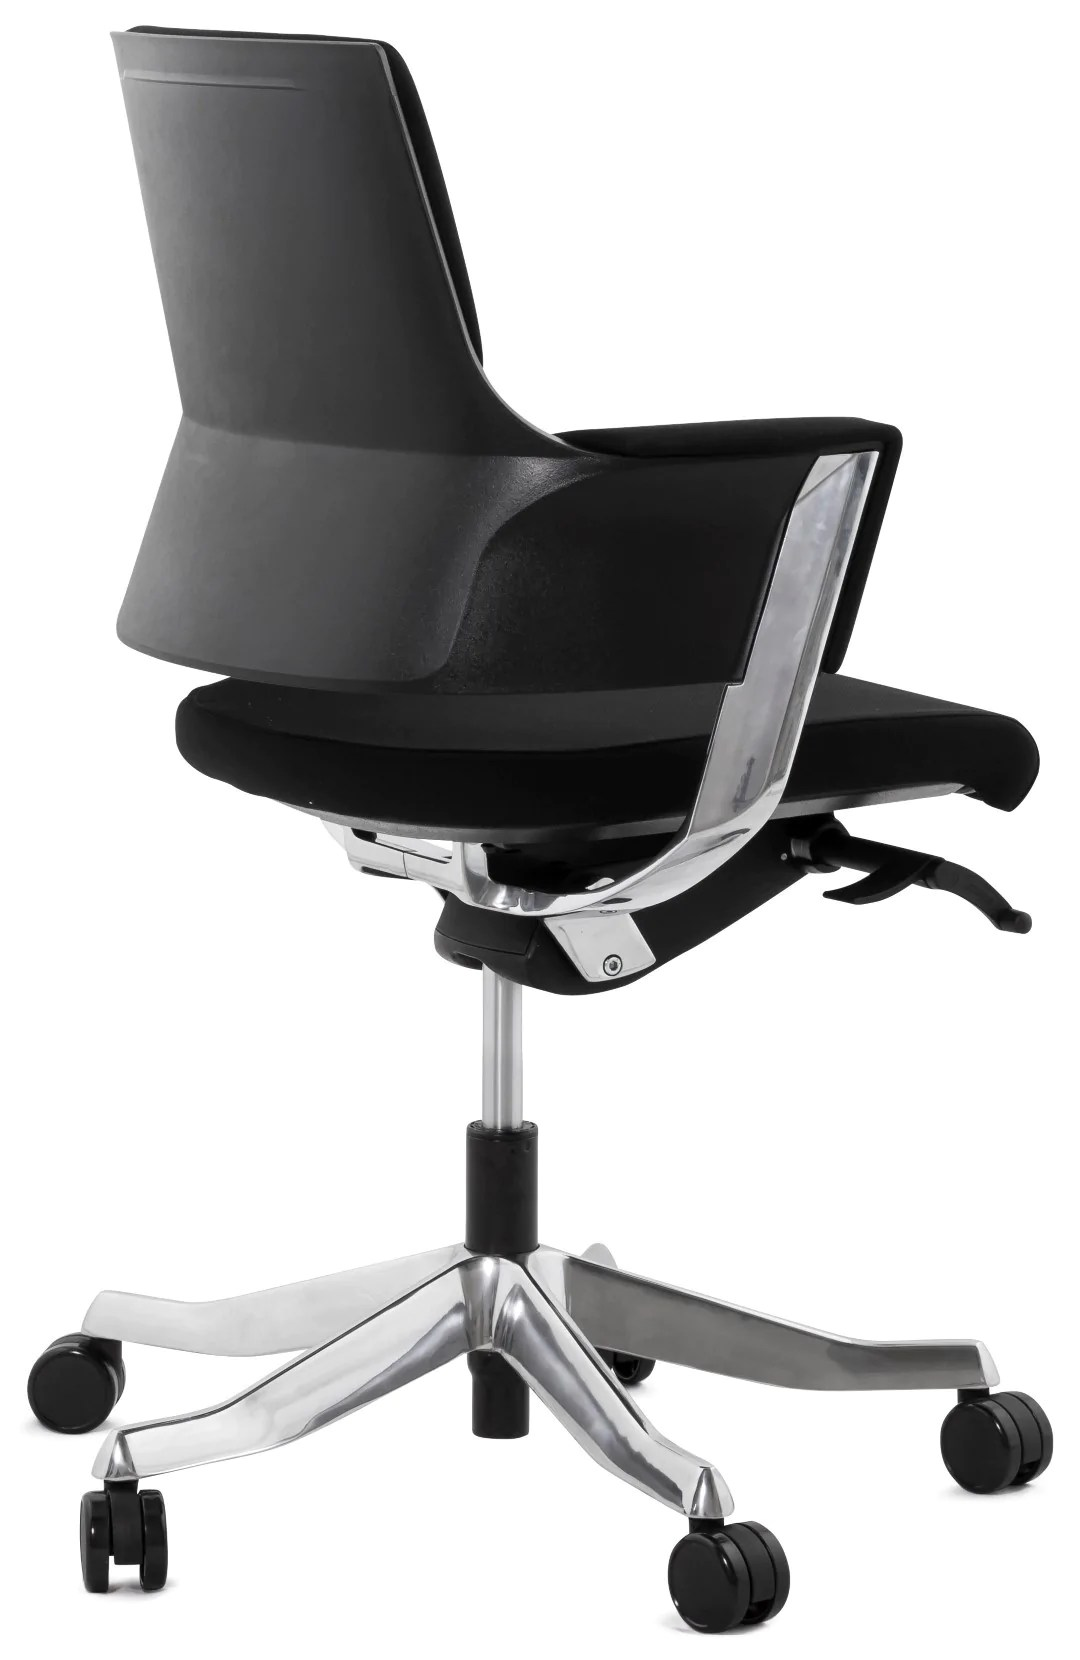 Most Ergonomic Office Chair Office Chair Ray